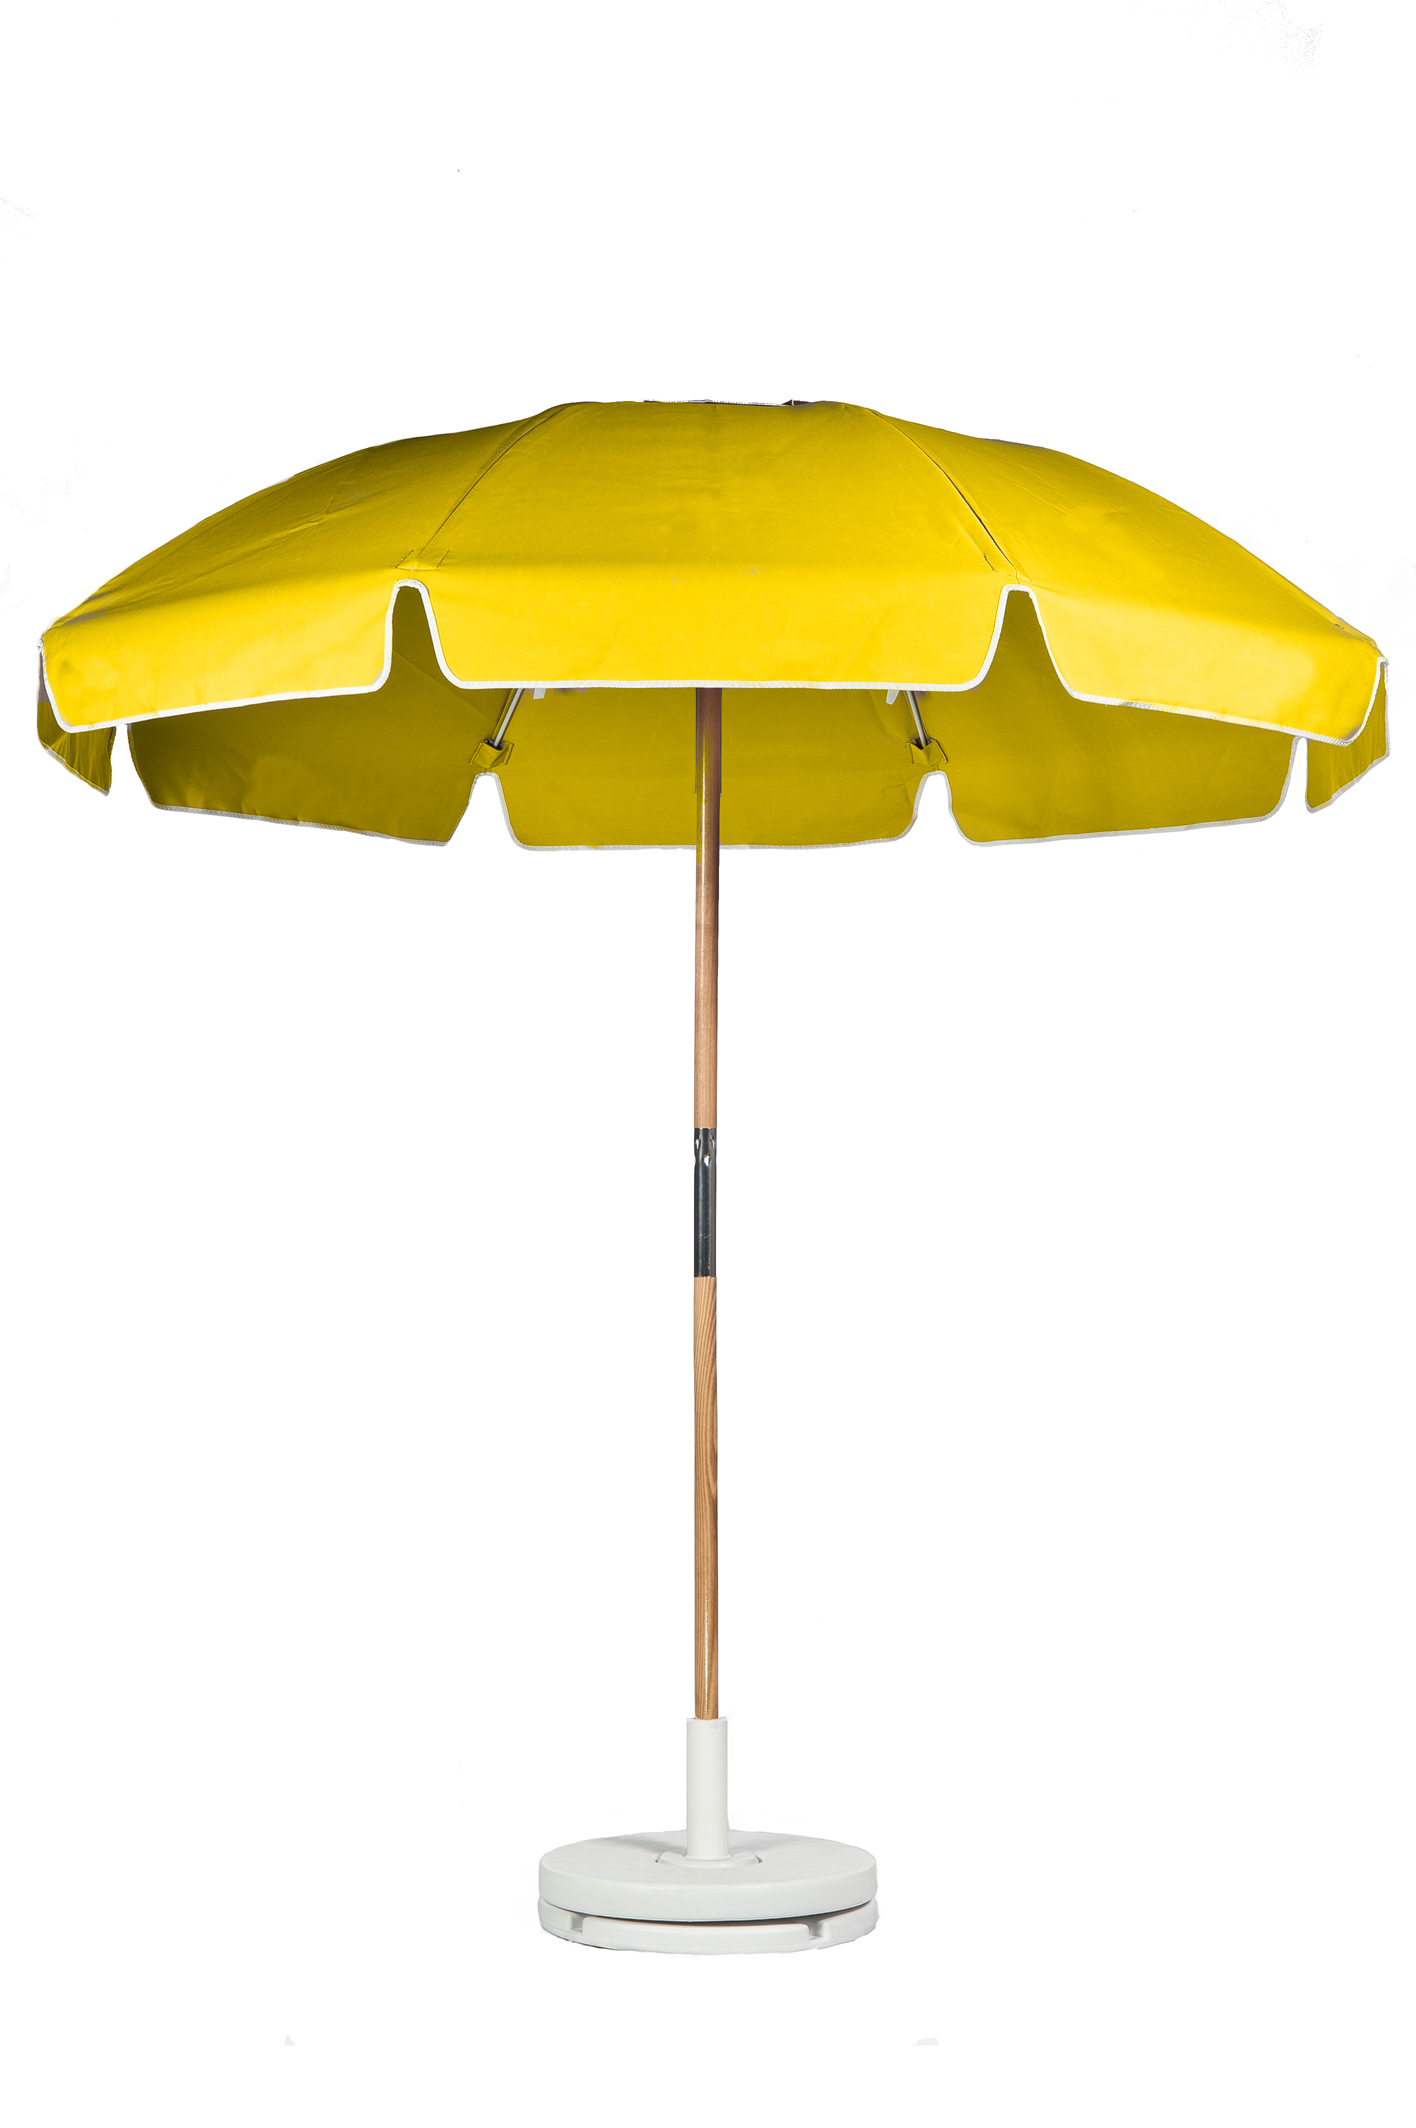 7.5′ BEACH UMBRELLA WITH FIBERGLASS SKELETON WITH VENT & VALANCE Stock Fabric:$199.00 Custom Fabric:$249.00